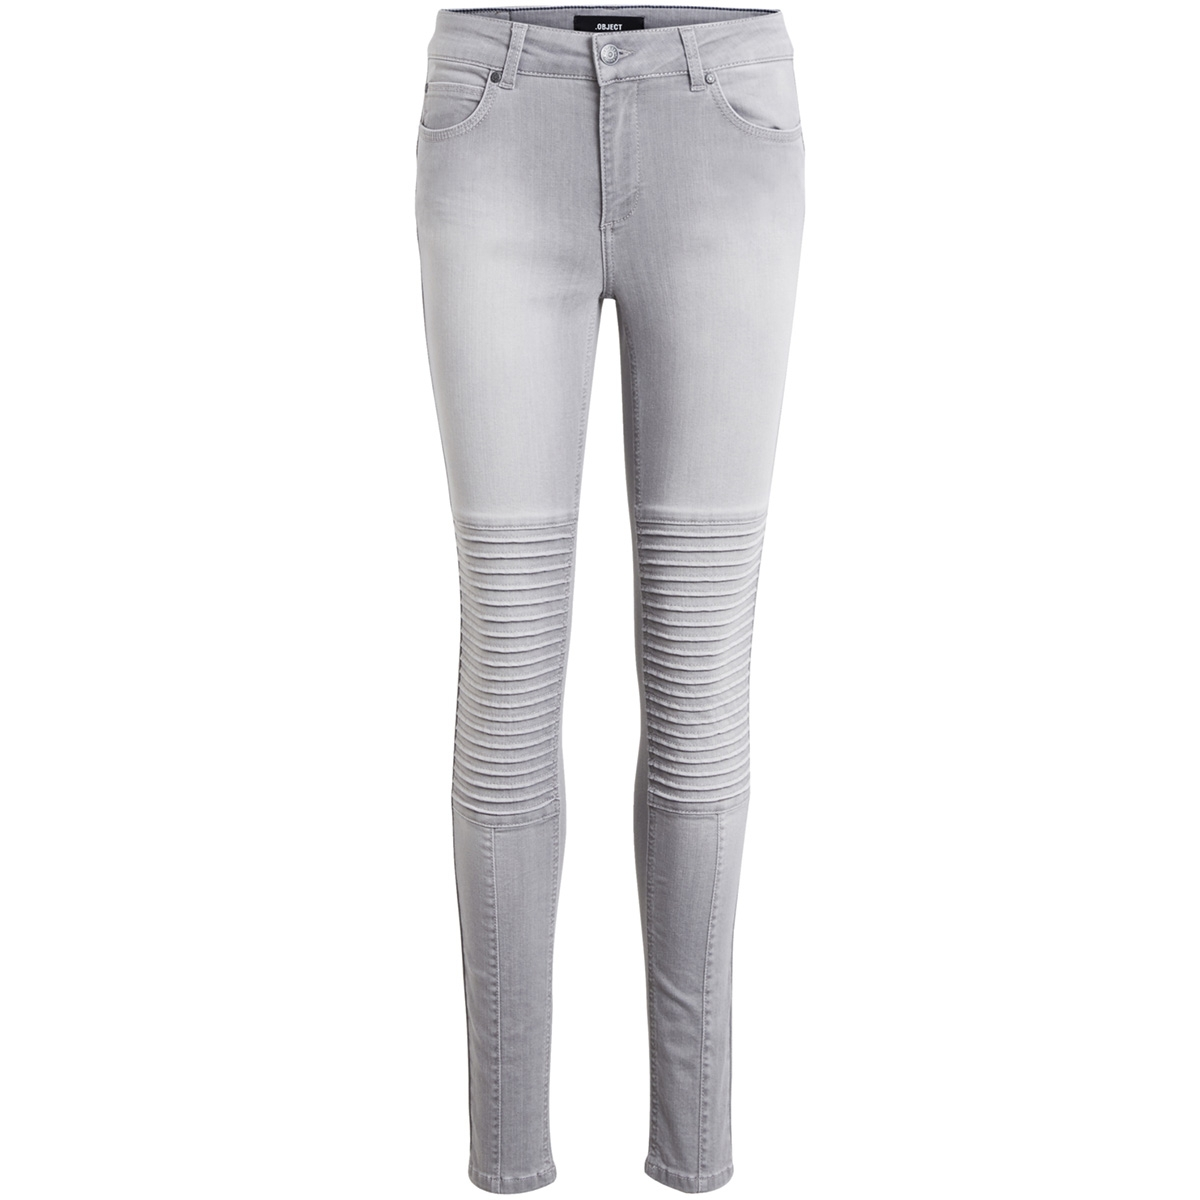 objskinny sally obb269 95 23026194 object jeans light grey denim